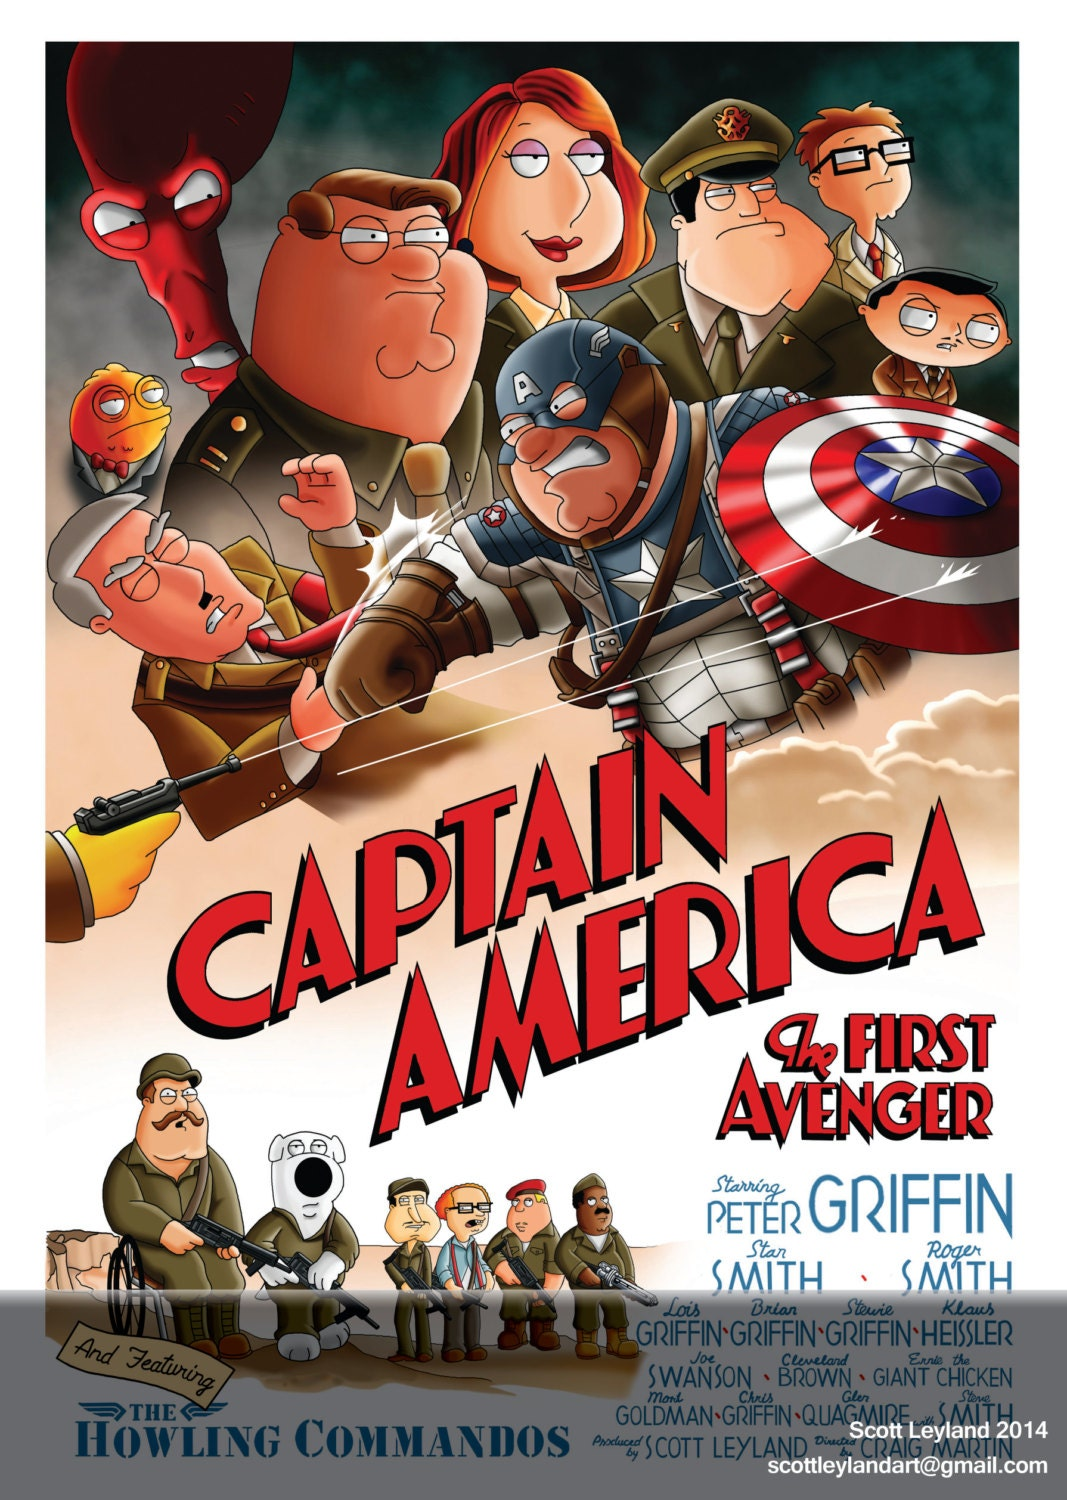 captain america family guy and american dad parody a3